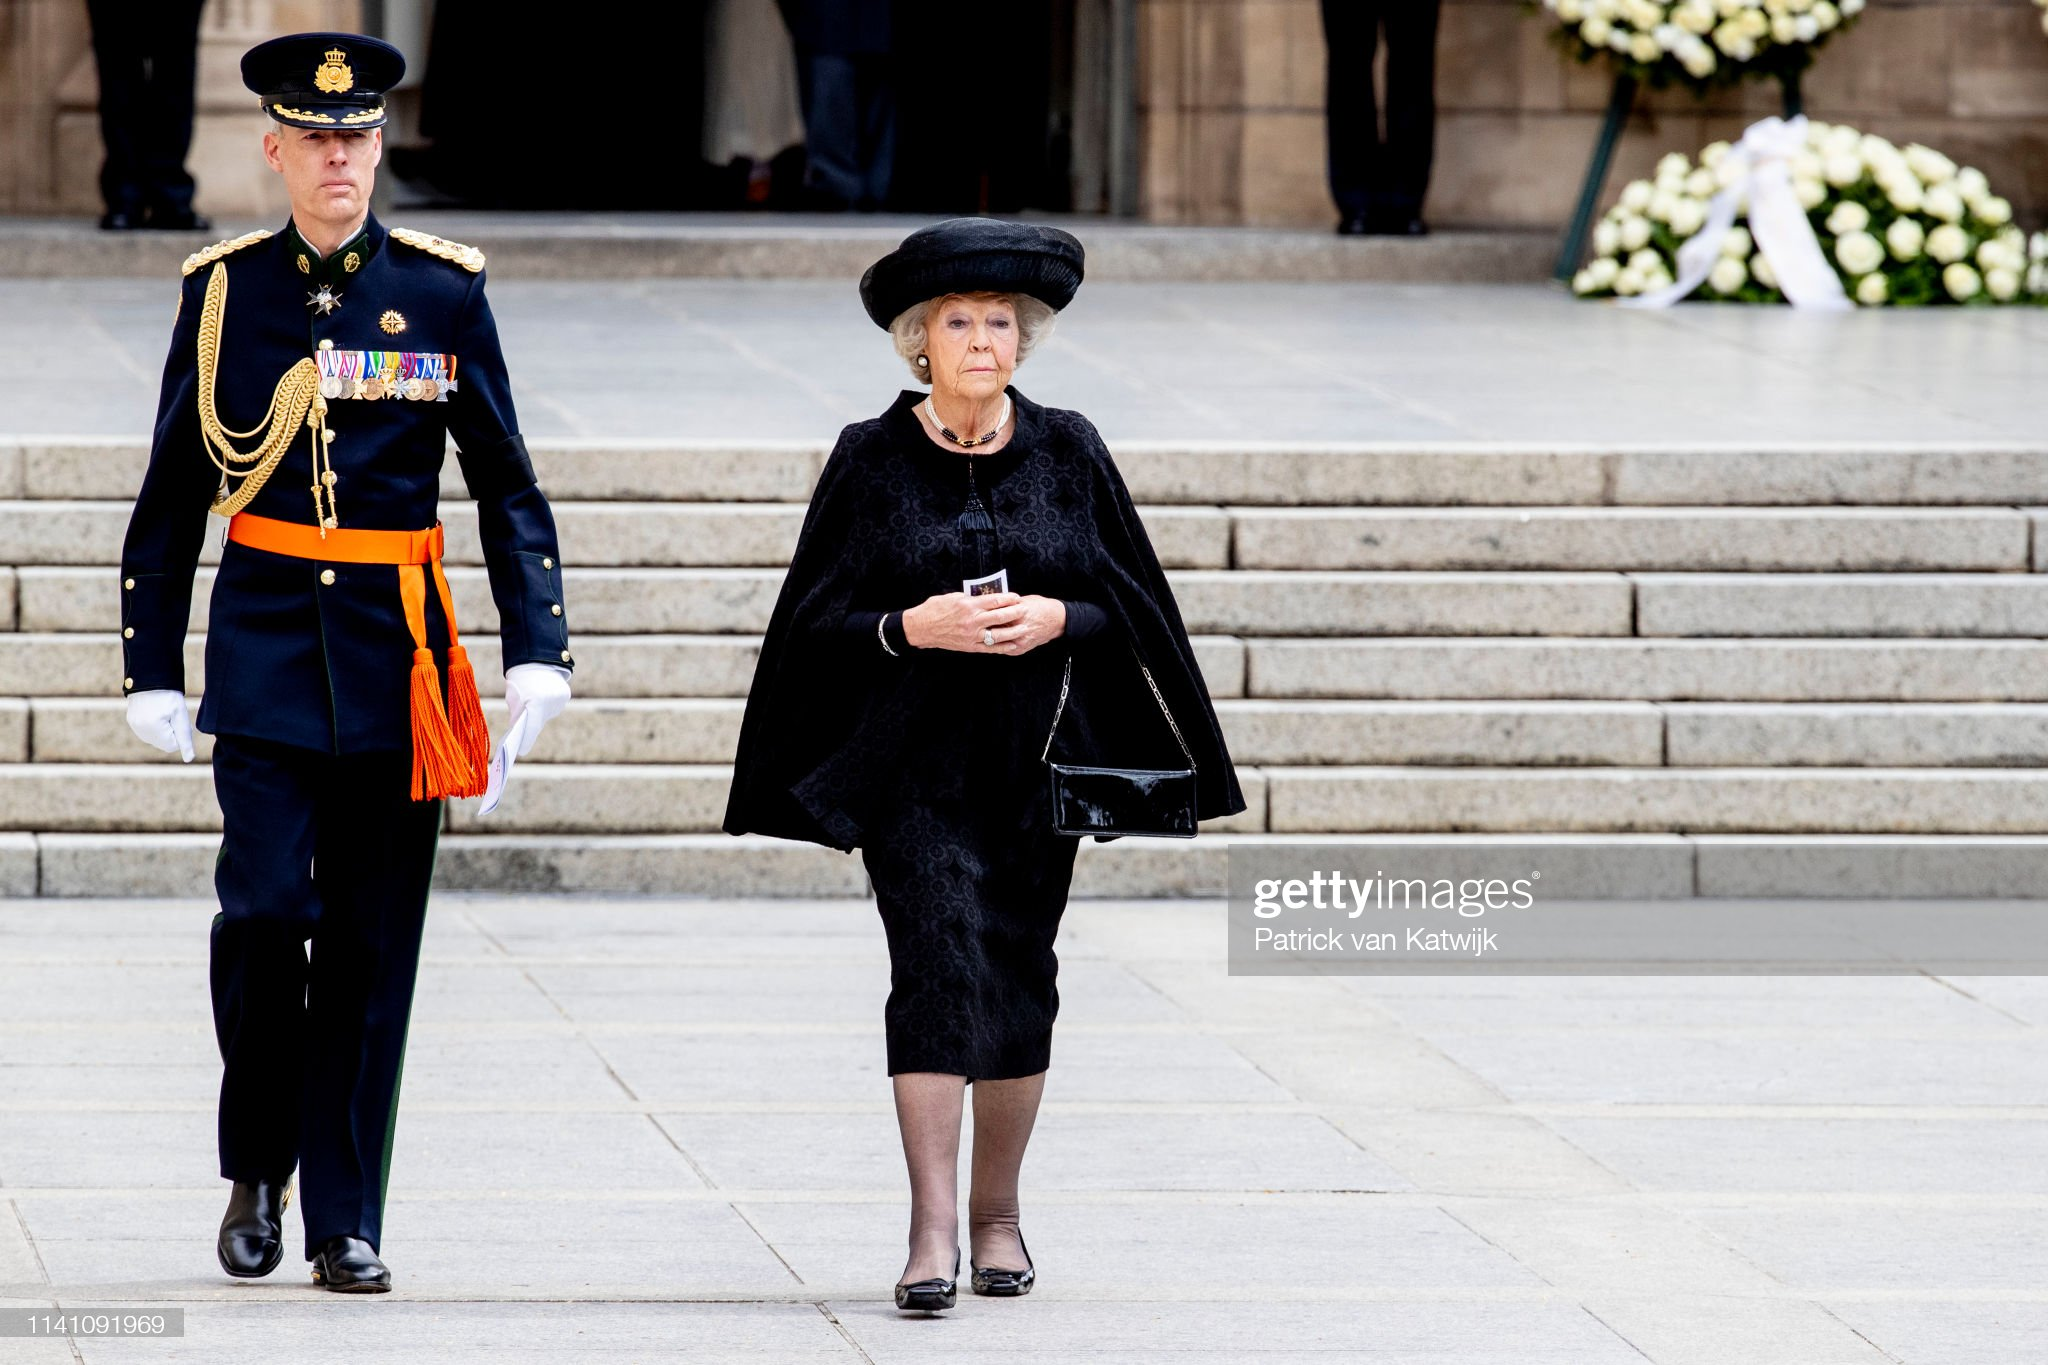 https://media.gettyimages.com/photos/princess-beatrix-of-the-netherlands-attends-the-funeral-of-grand-duke-picture-id1141091969?s=2048x2048